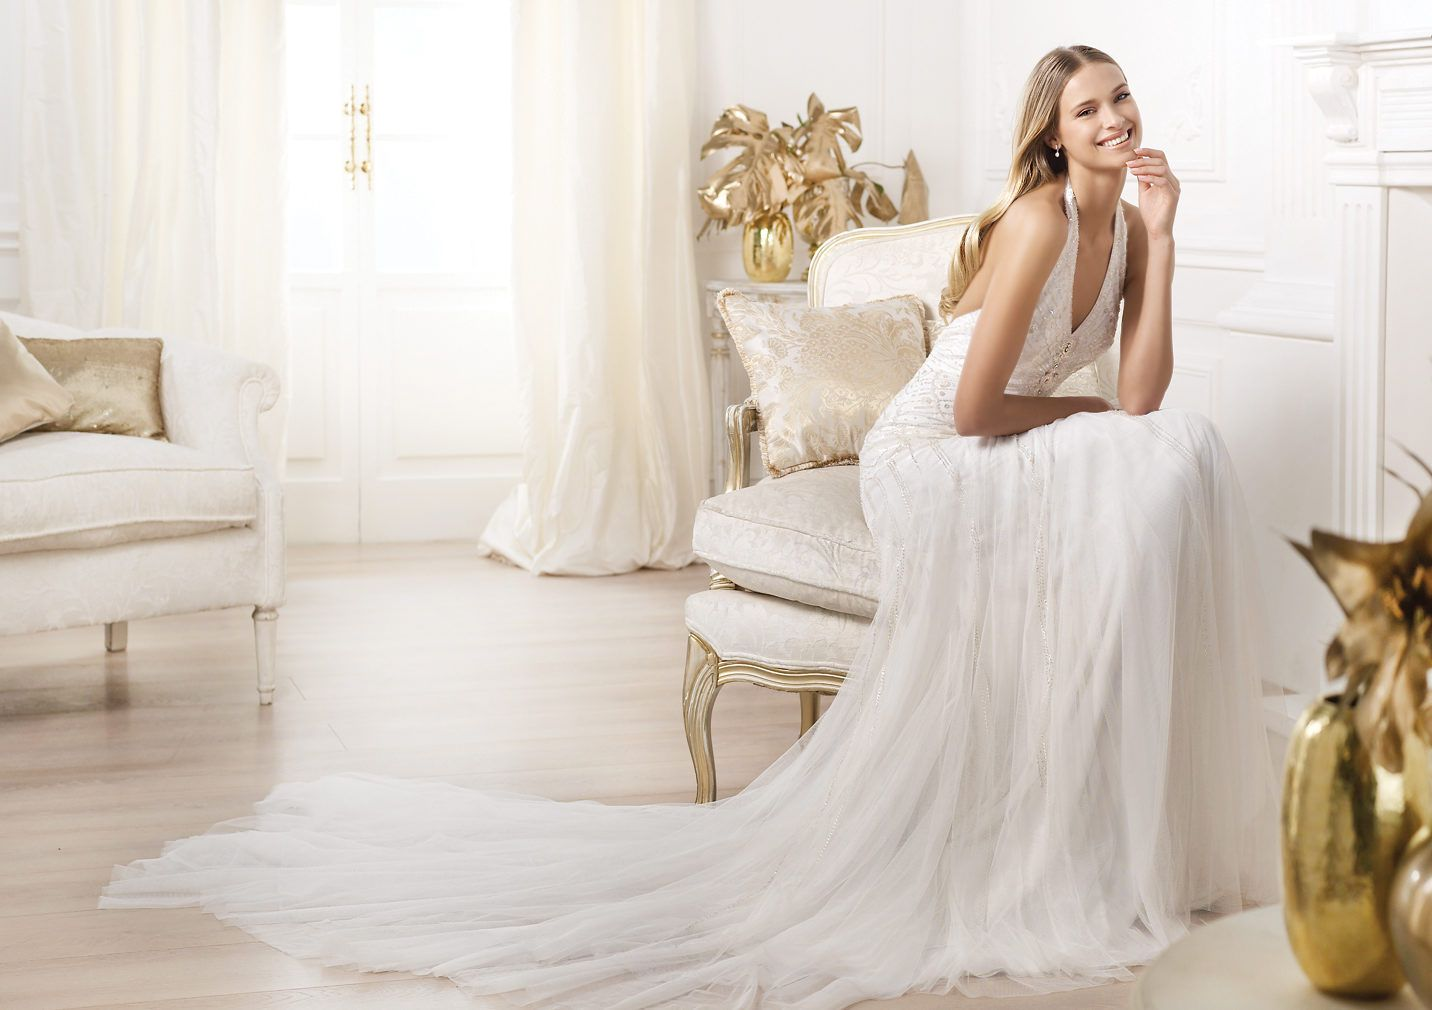 Pronovias Presents The Stunning 2018 Preview Collections: Pronovias Presents The Lacey Wedding Dress. Fashion 2014